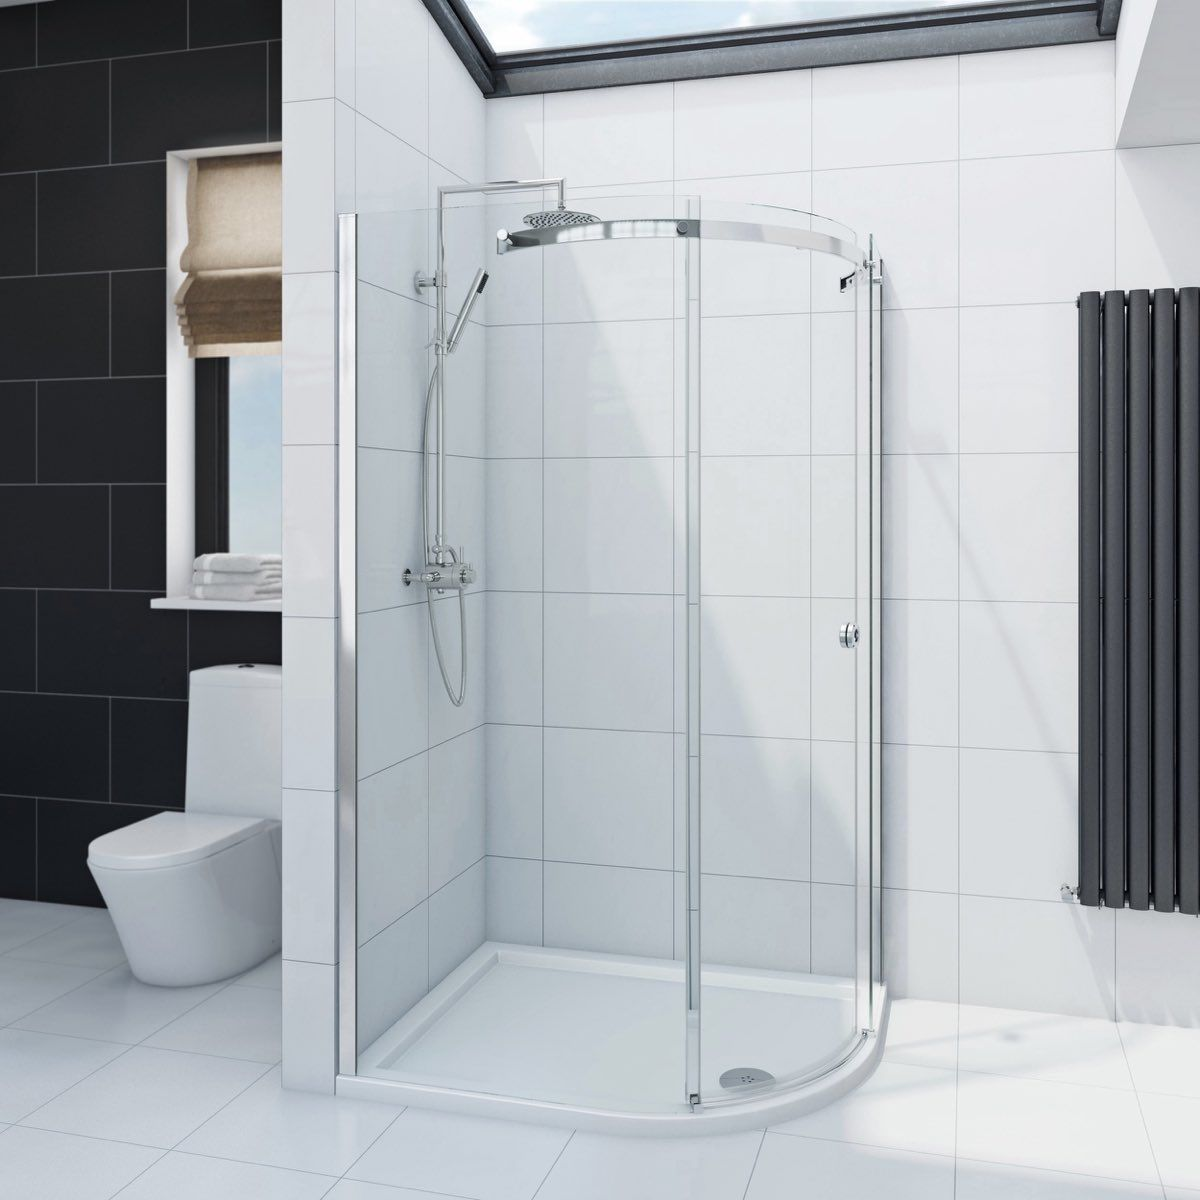 See Our Infiniti 8mm One Door Offset Quadrant Shower Enclosure 1000 X 800 Rh Plus Many More Curved Quadrant Shower Enclosures Quadrant Shower Shower Enclosure